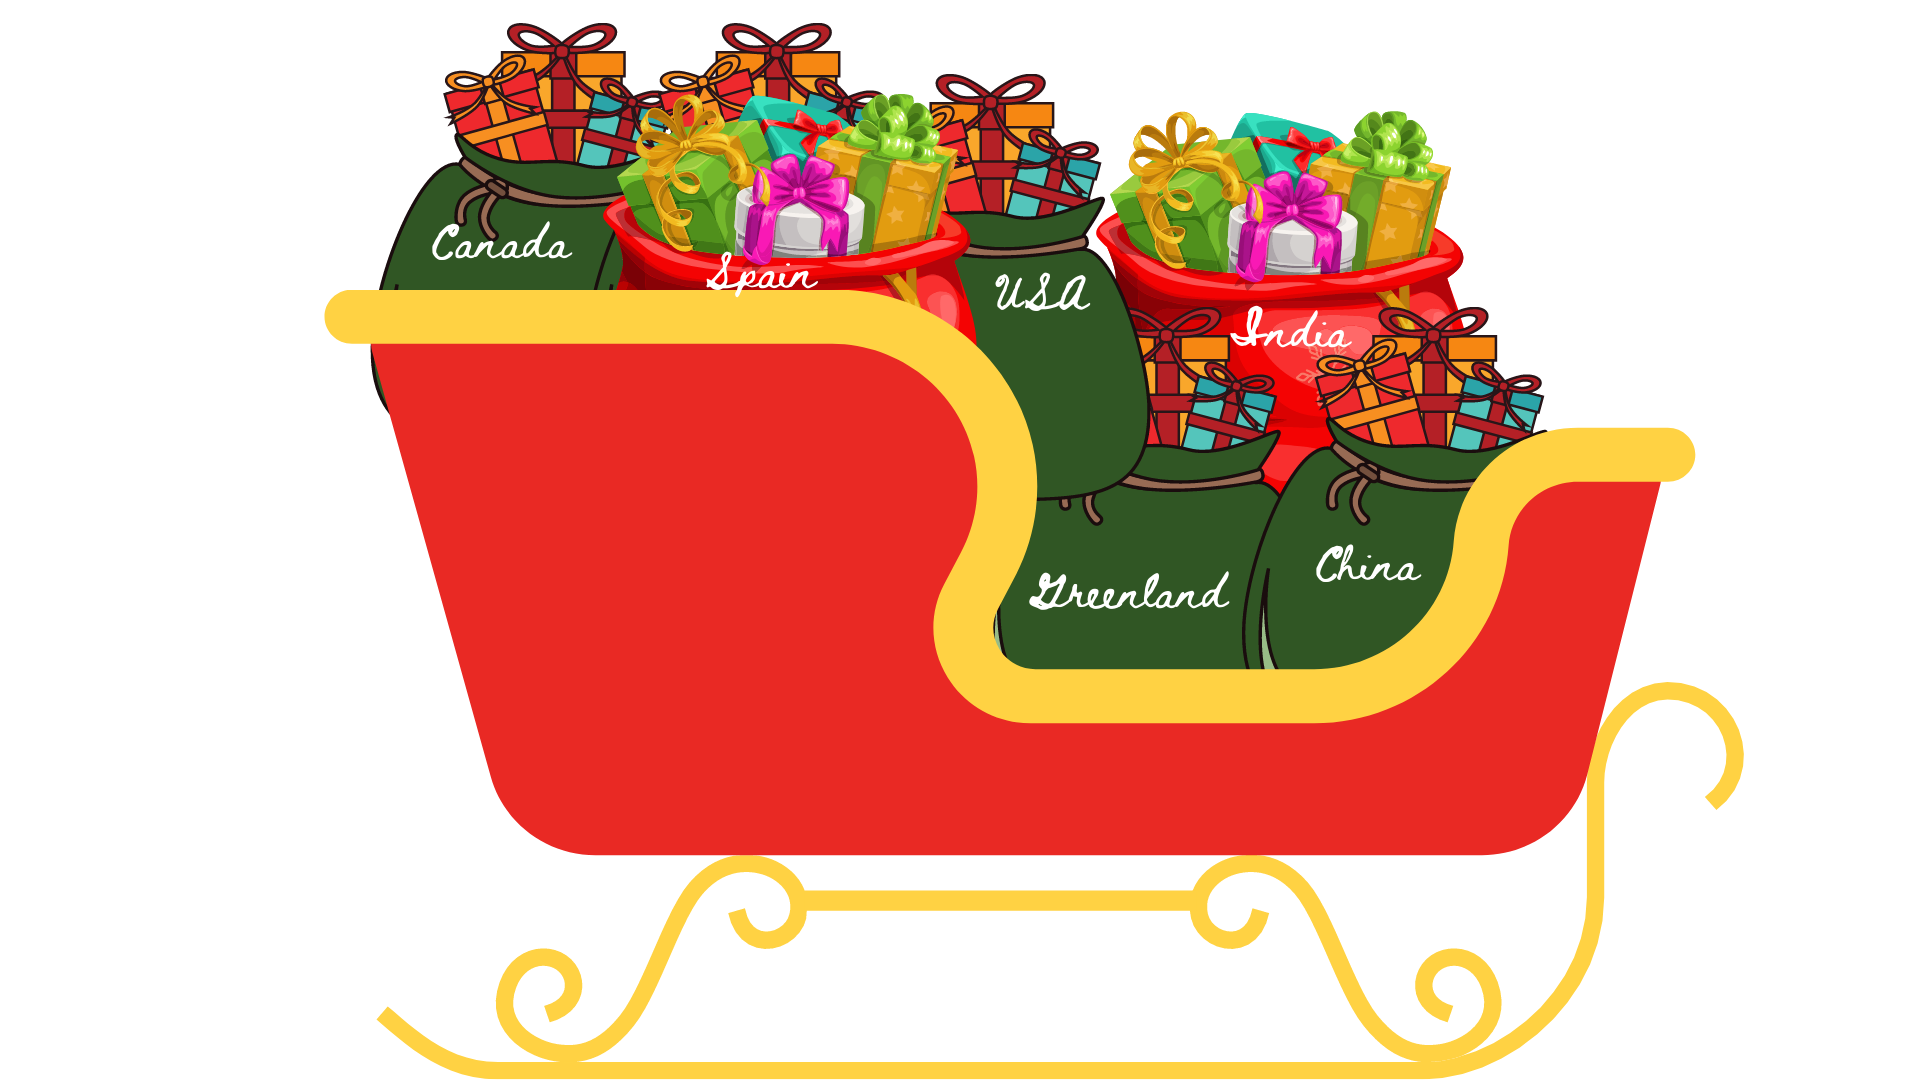 Santa's Sleigh filled with presents.